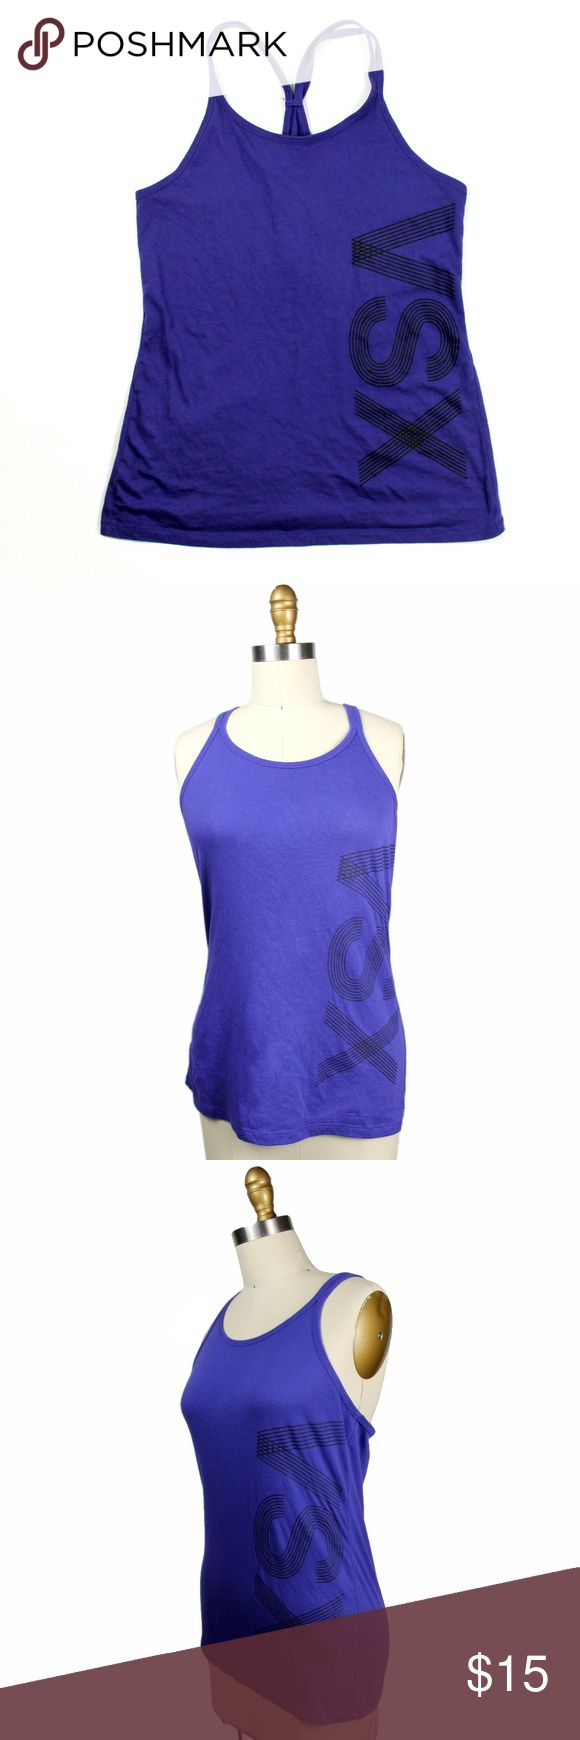 """VSX Sport Purple Strappy Work Out Tank - Small VSX Sport Purple Strappy Work Out Tank - Small  - Double strap racerback tank by VSX Victoria's Secret Sport - Excellent condition - no flaws or signs of wear - 60% cotton 40% polyester - 16"""" armpit to armpit, 25"""" length  171227 Victoria's Secret Tops Tank Tops"""